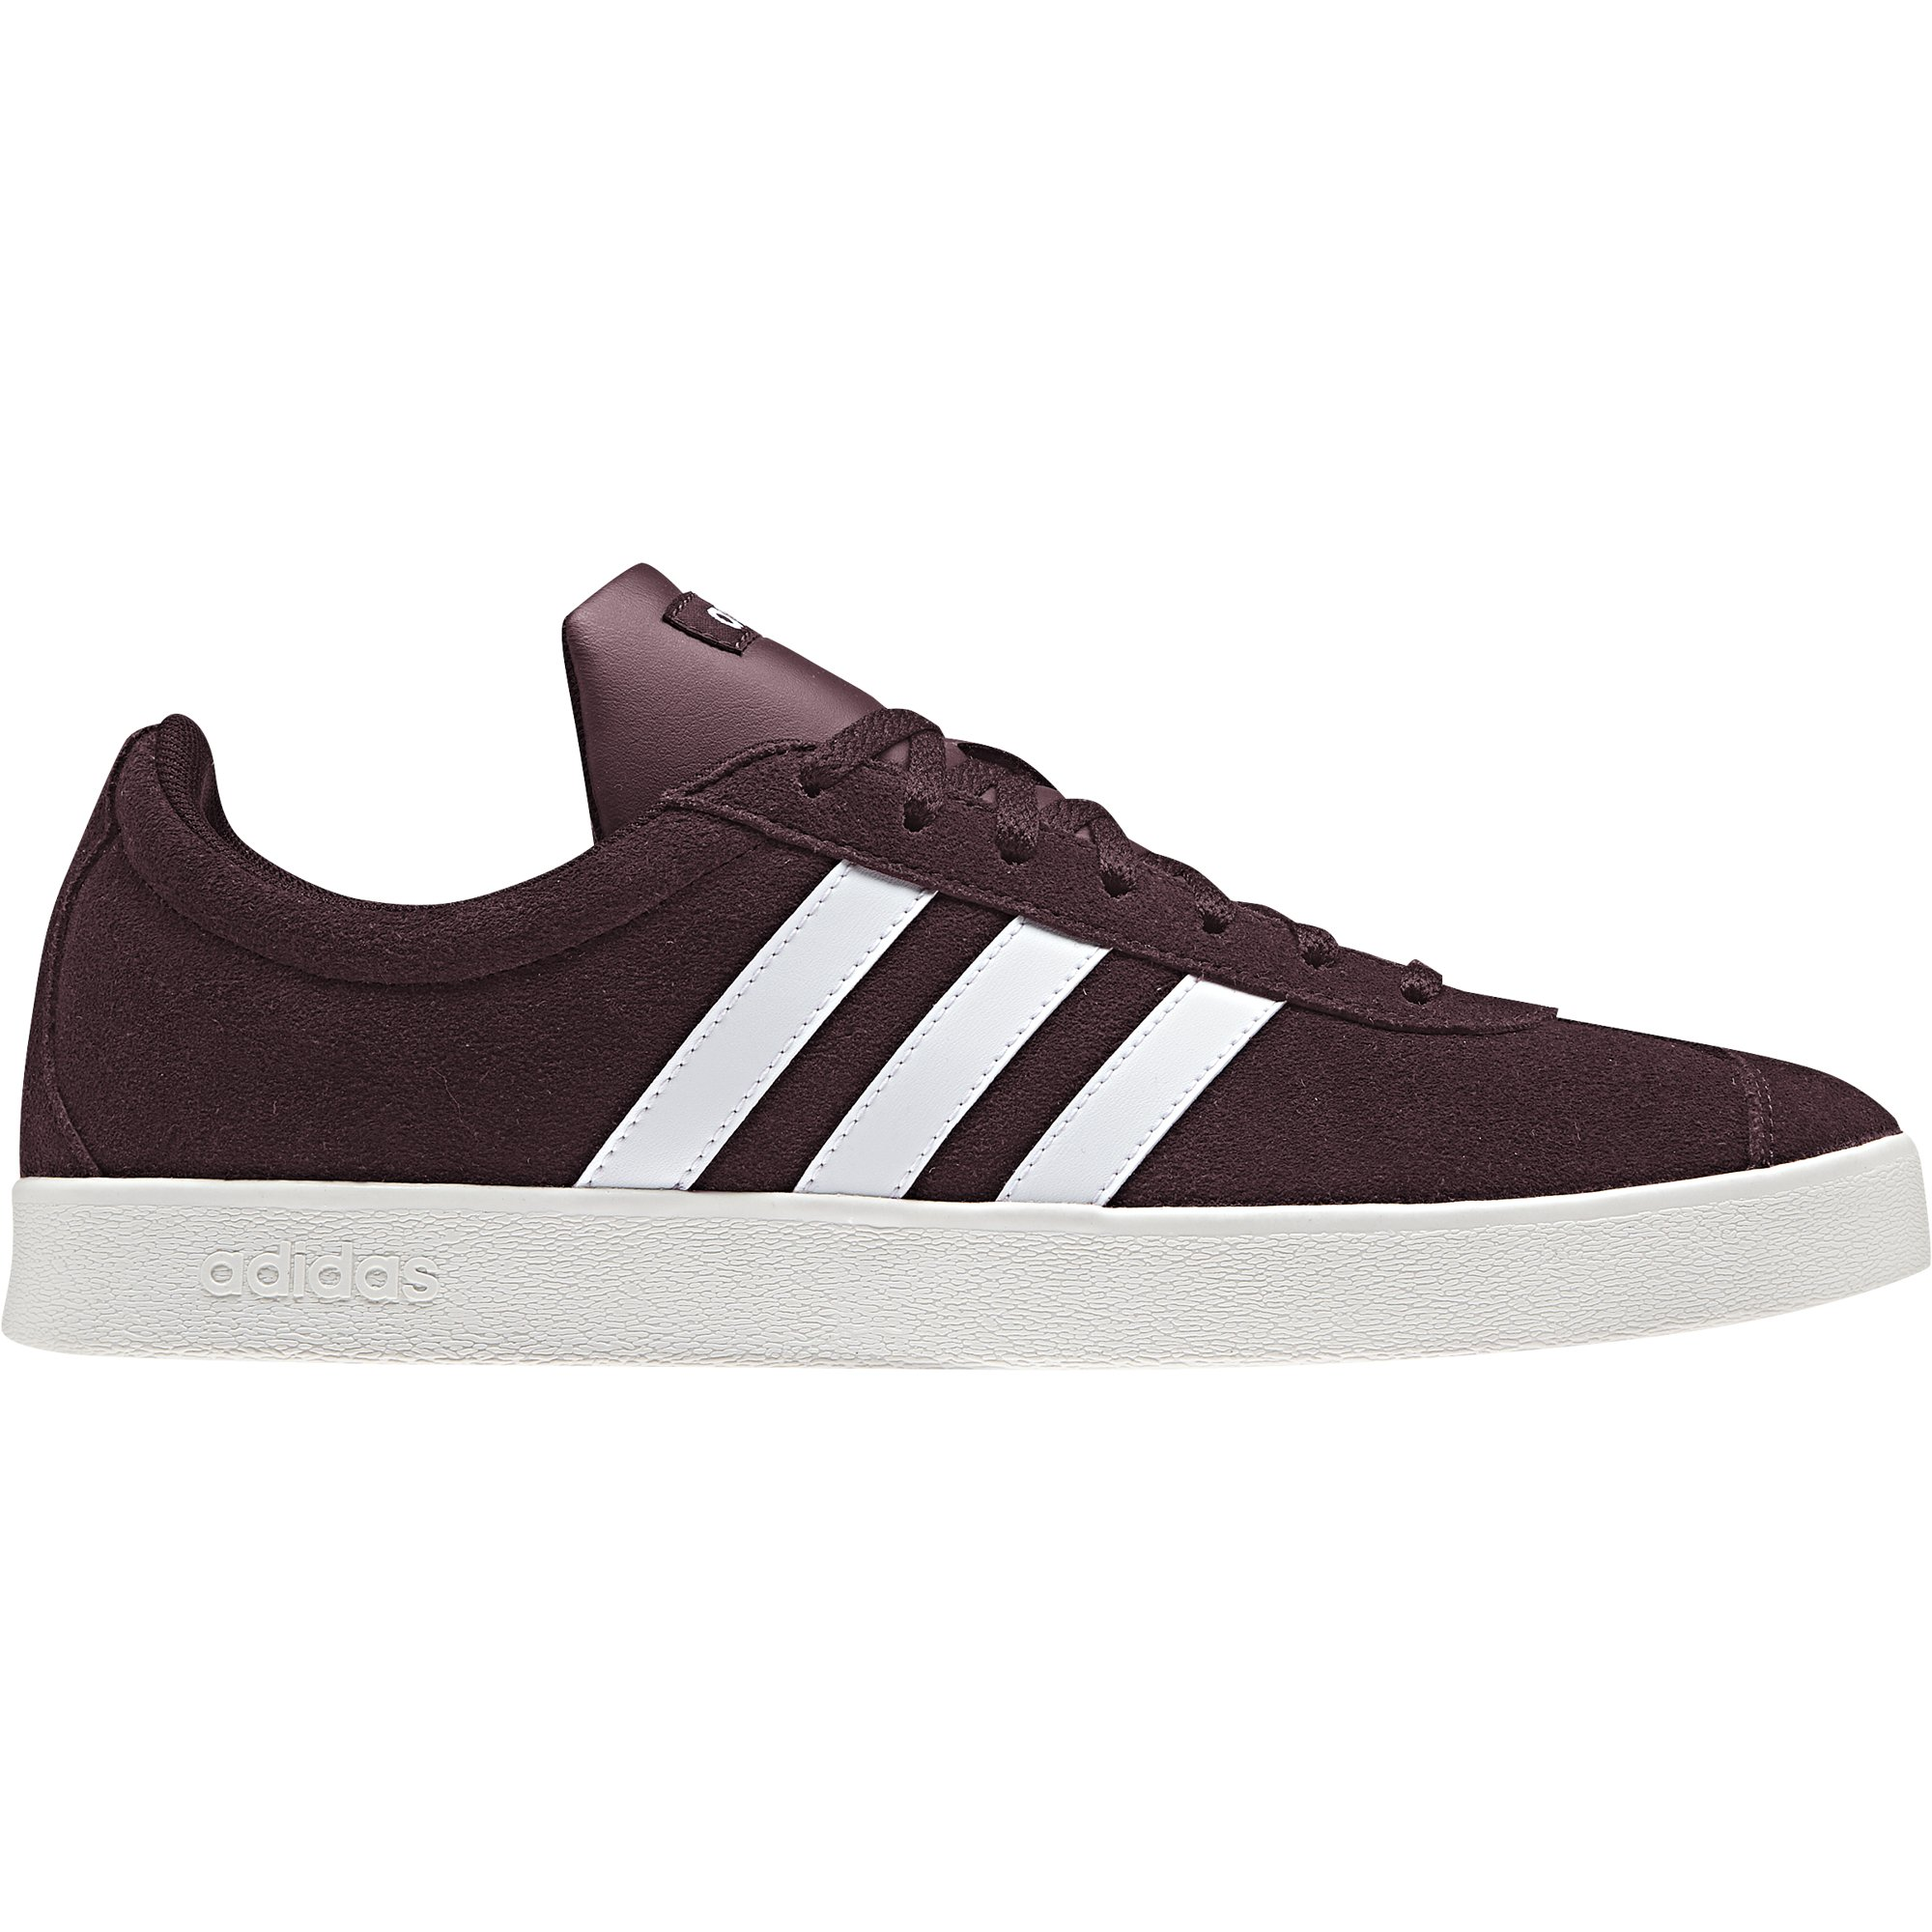 adidas Performance Men's VL Court 2.0 Sneaker,  Maroon/White/Cloud White,  9 M US